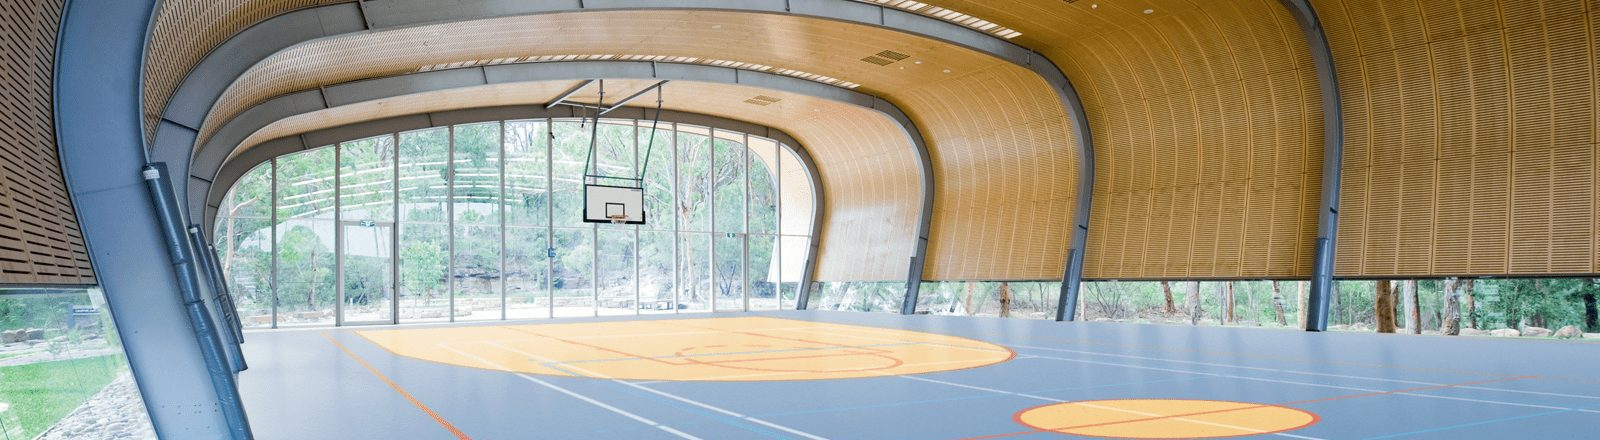 Multi purpose sports hall with sports flooring